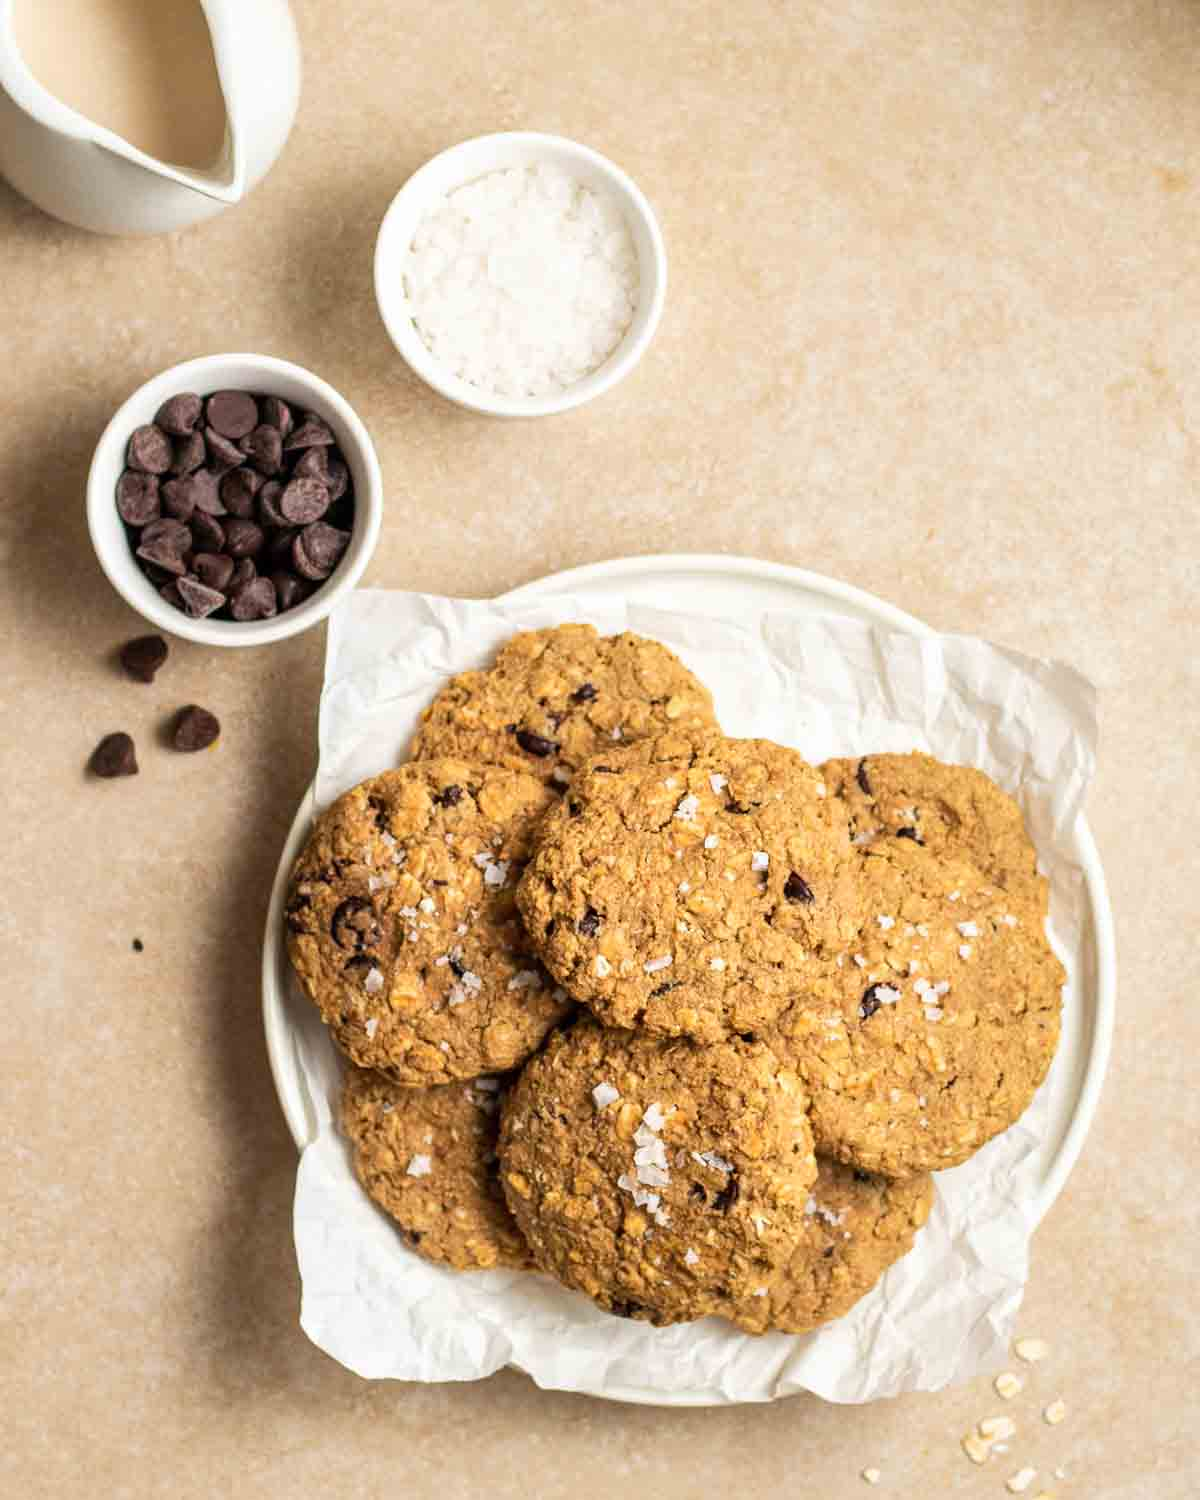 Plate filled with cookies with ramekin filled with chocolate chips, sea salt and jug of milk beside.